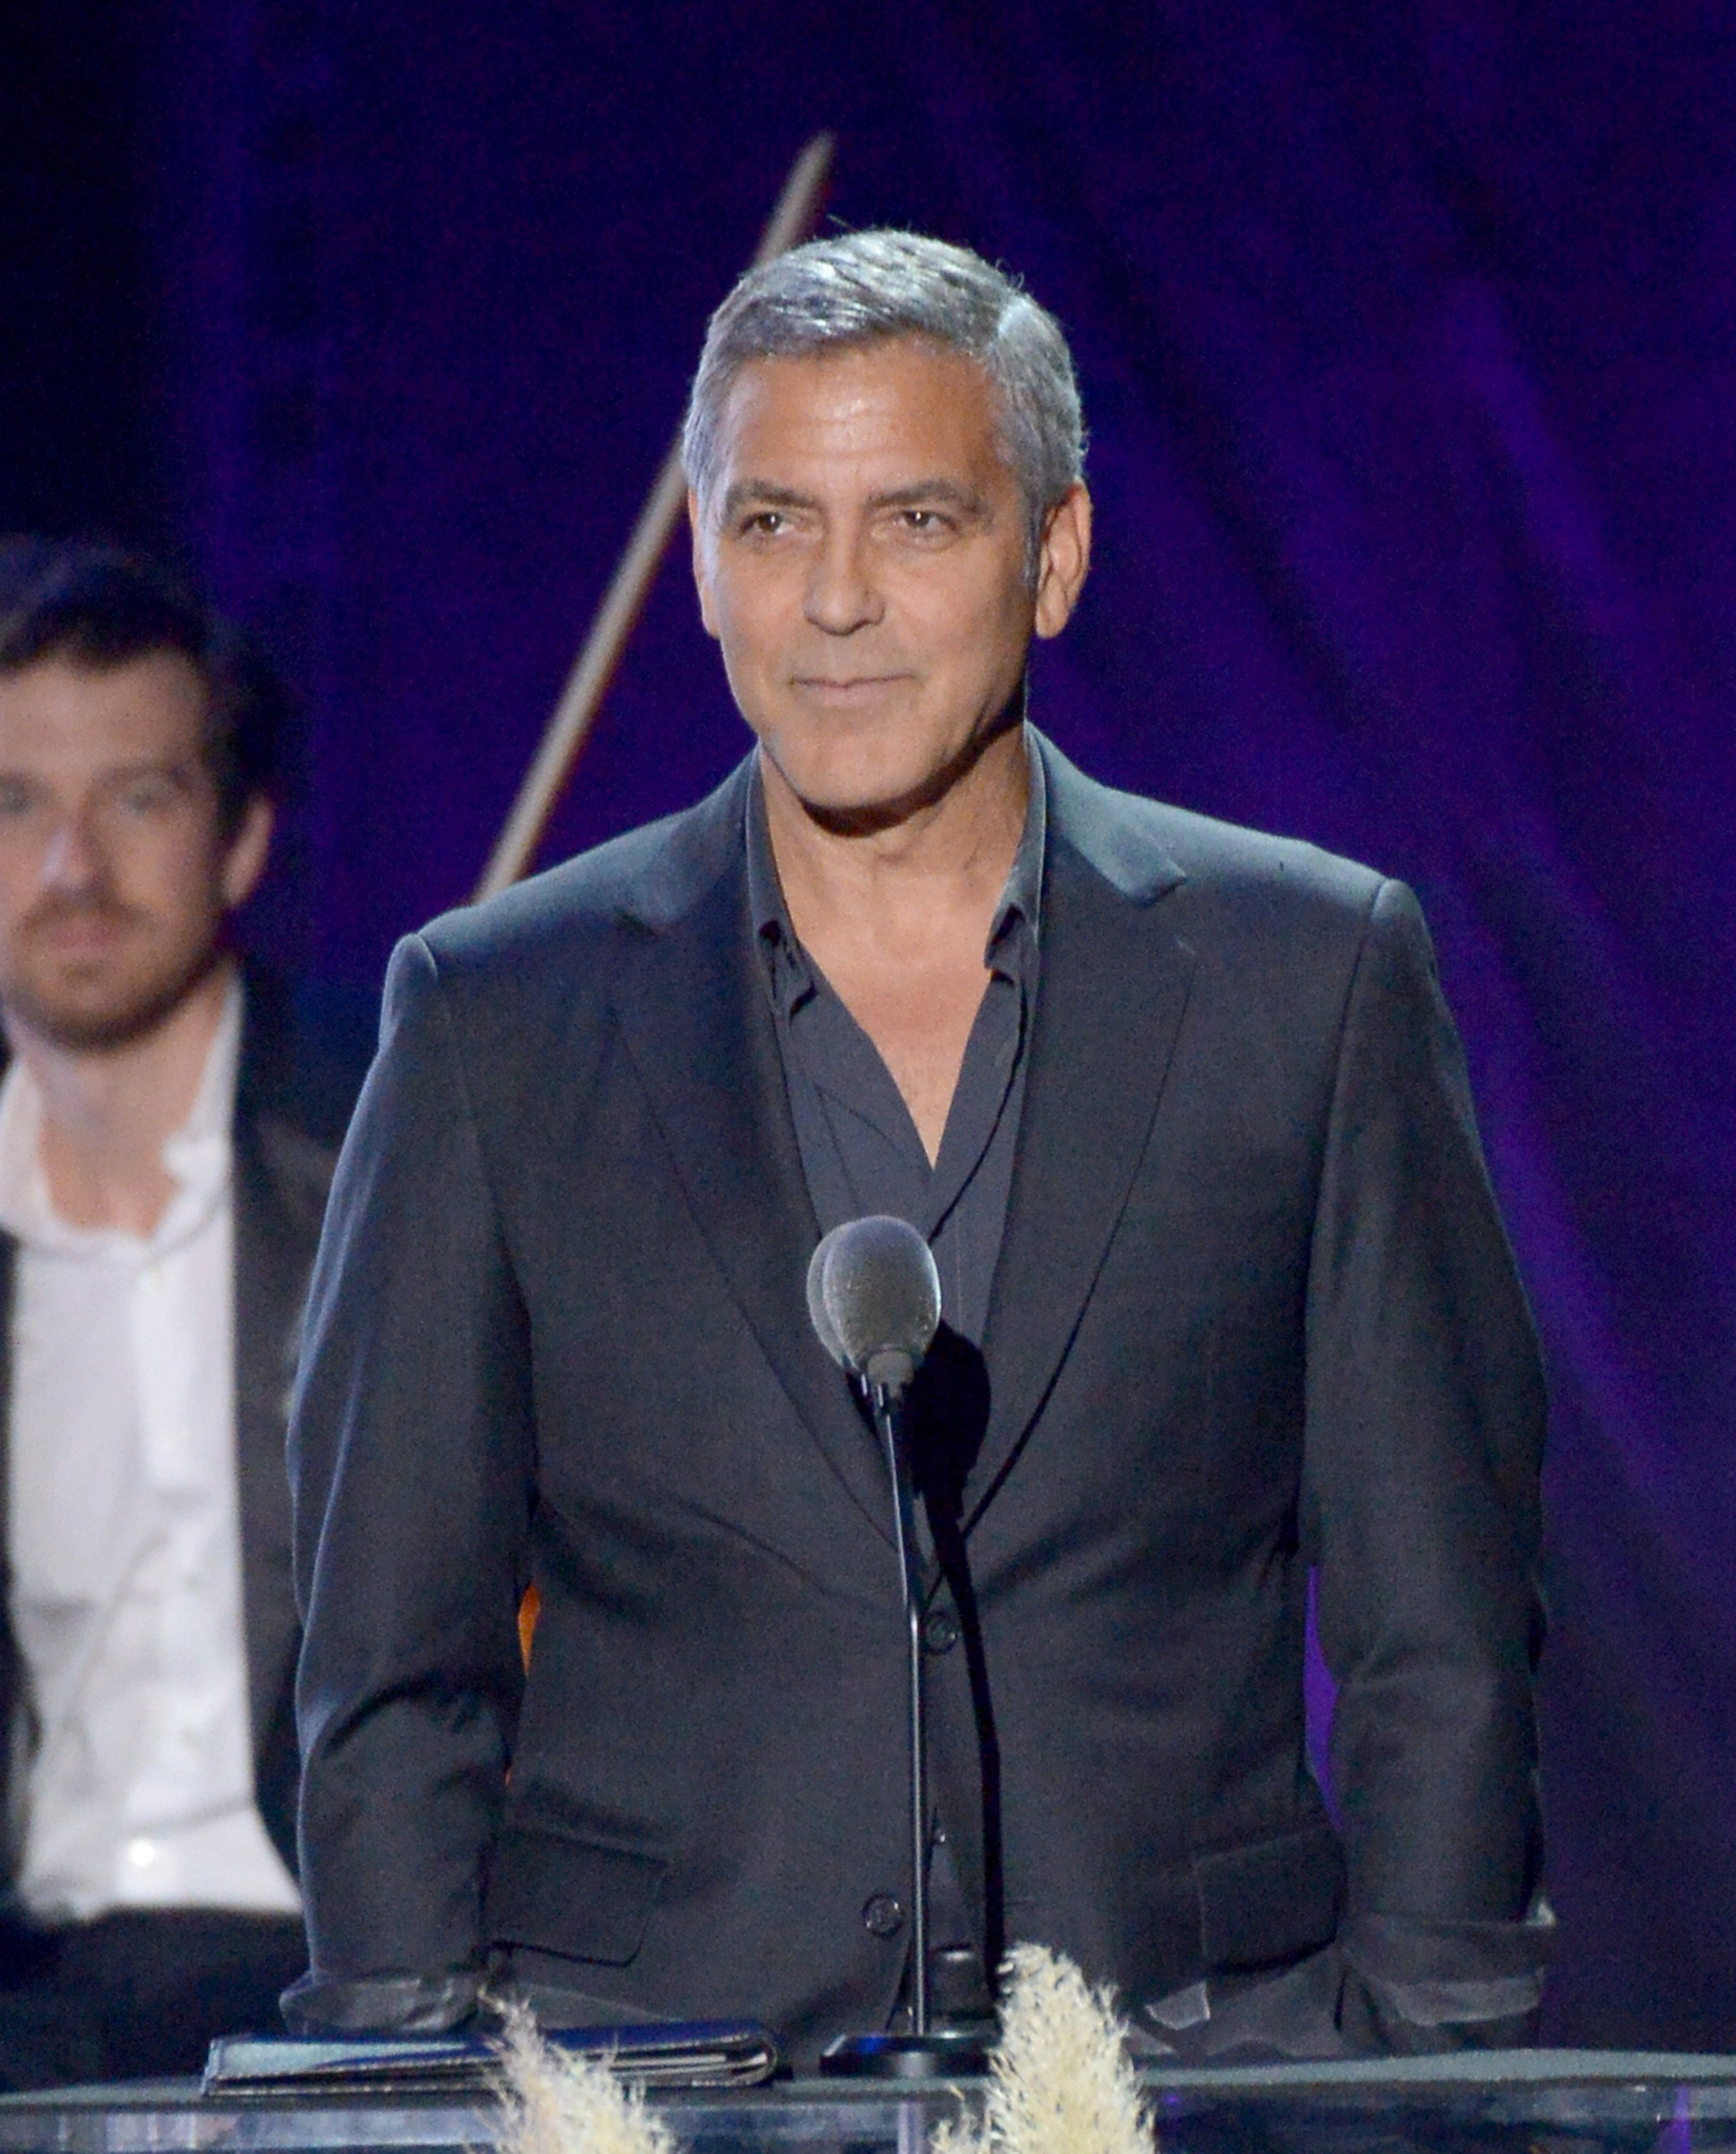 George Clooney speaks onstage during the MPTF 95th anniversary celebration with 'Hollywood's Night Under The Stars' at MPTF Wasserman Campus on October 1, 2016 in Los Angeles